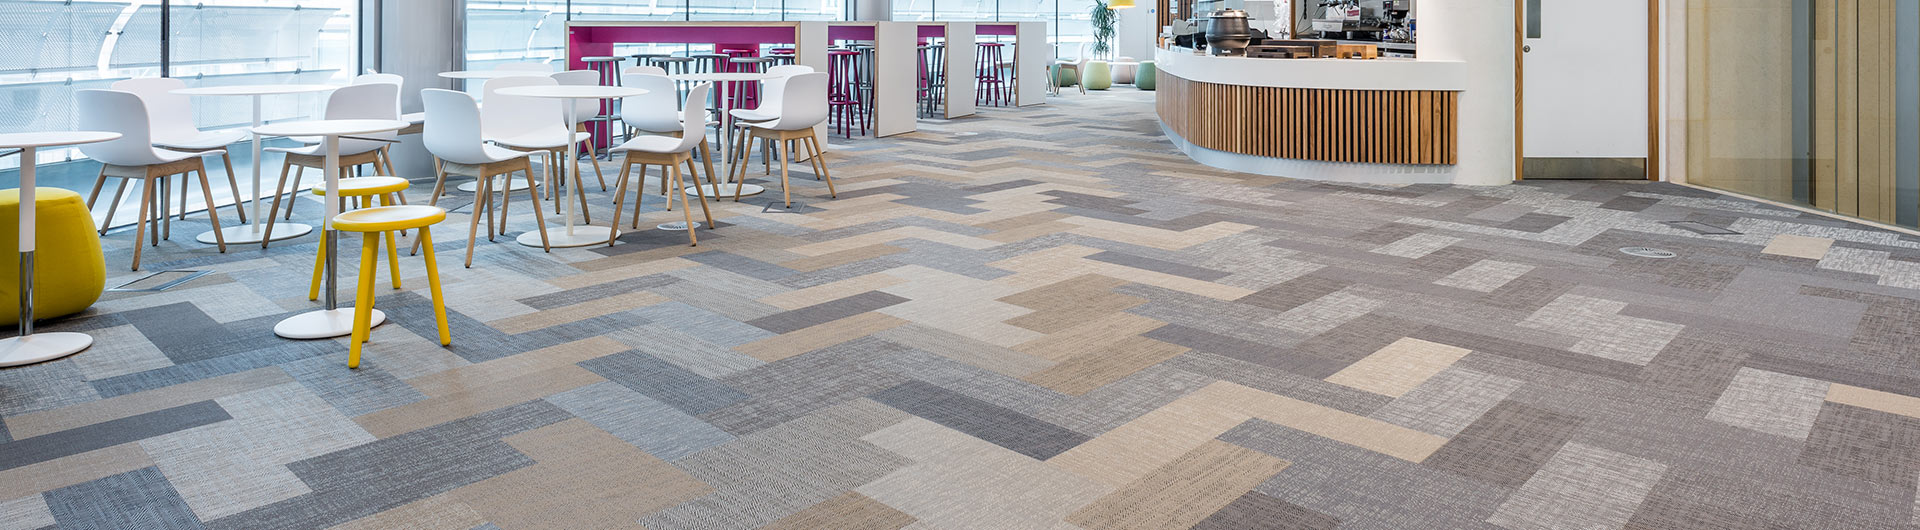 bolon_flooring_office_cima1_uk